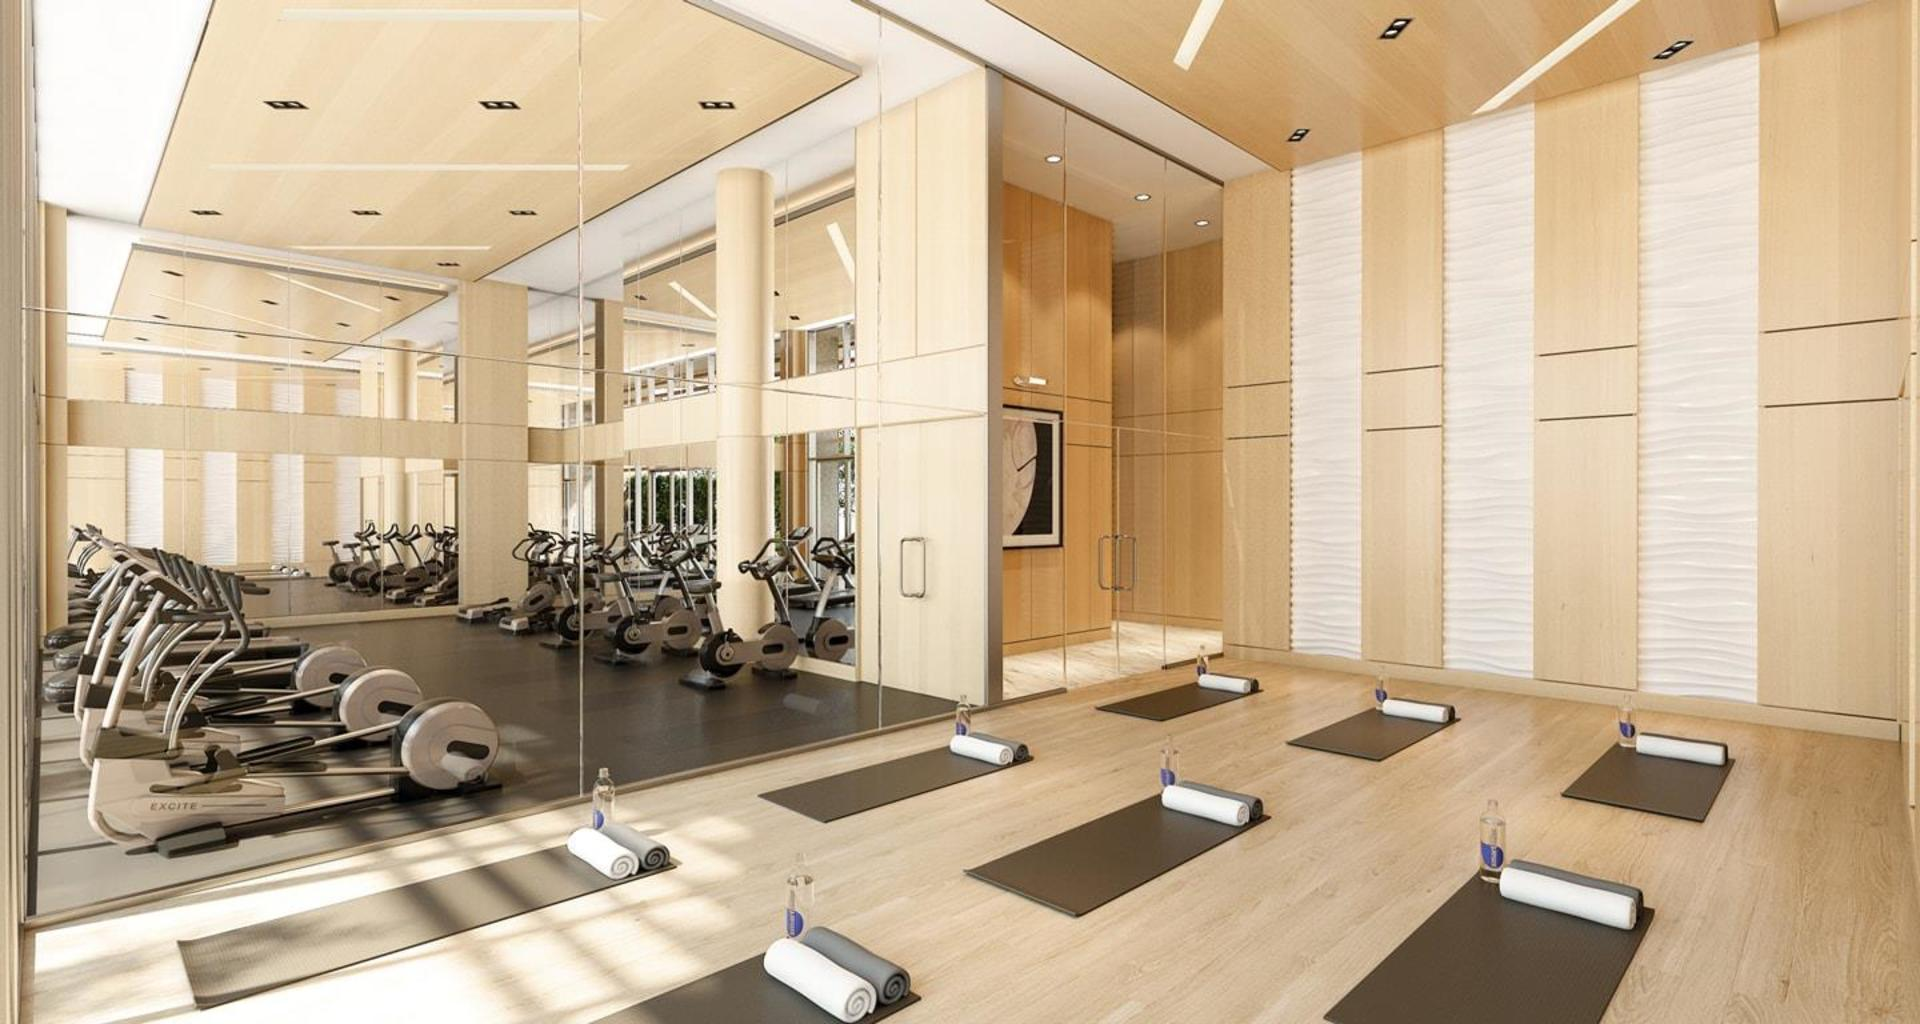 Concord Brentwood Hillside West Gym and Yoga at Hillside West Tower 1 and 2 - Concord Brentwood (4720 Lougheed Highway, Brentwood Park, Burnaby North)